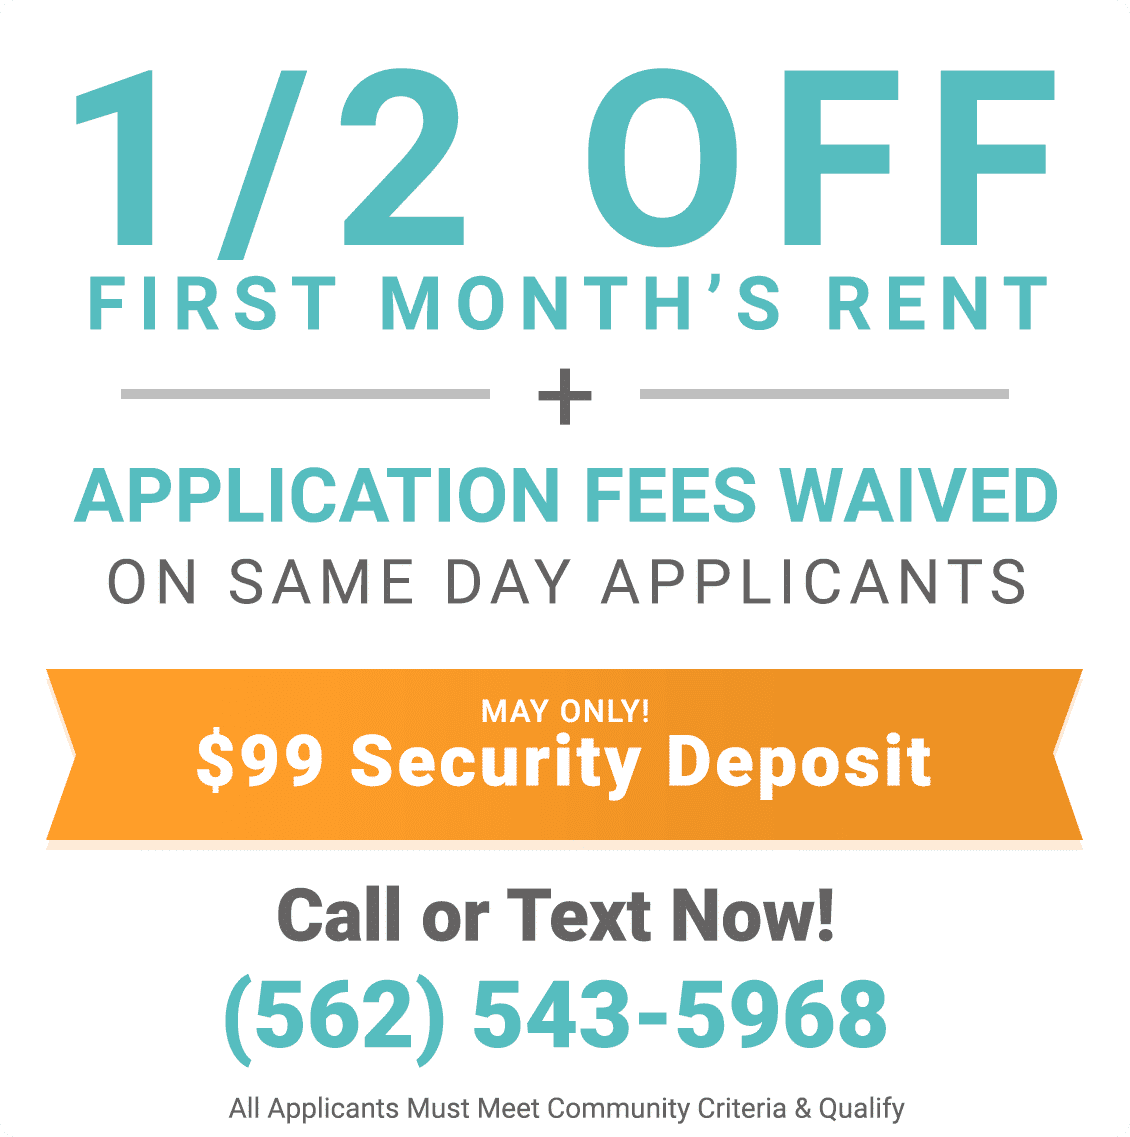 1/2 off first month's rent plus application fees waived on same day applicants